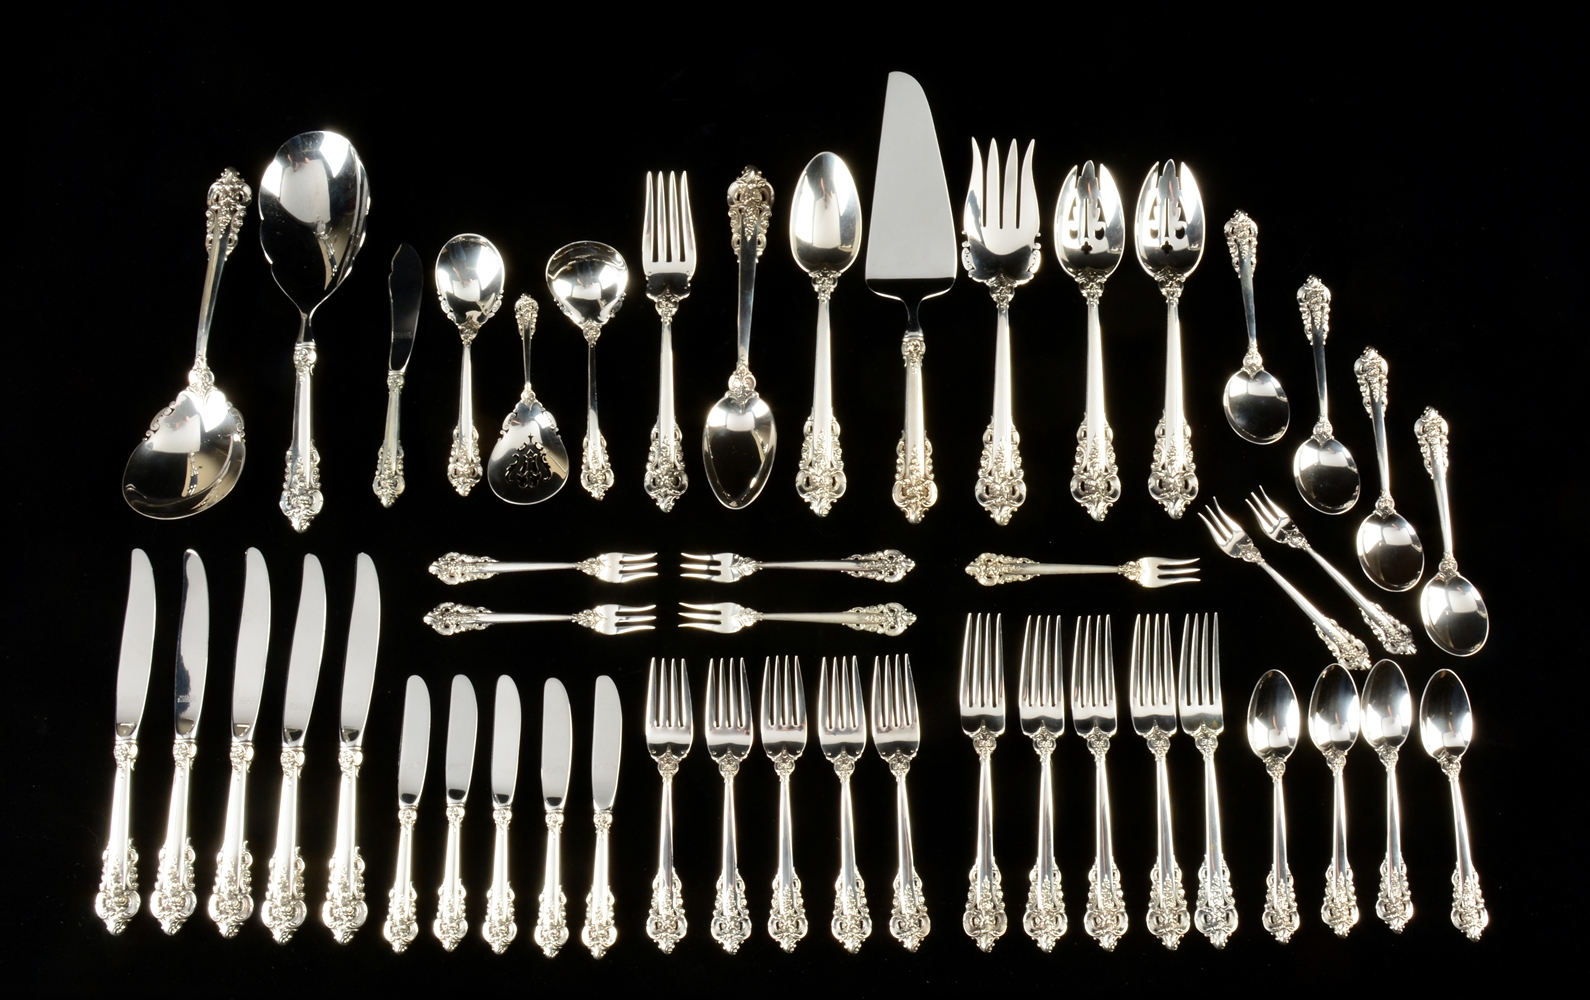 Wallace Grand Baroque Sterling Silver Service Set of 229 Pieces.